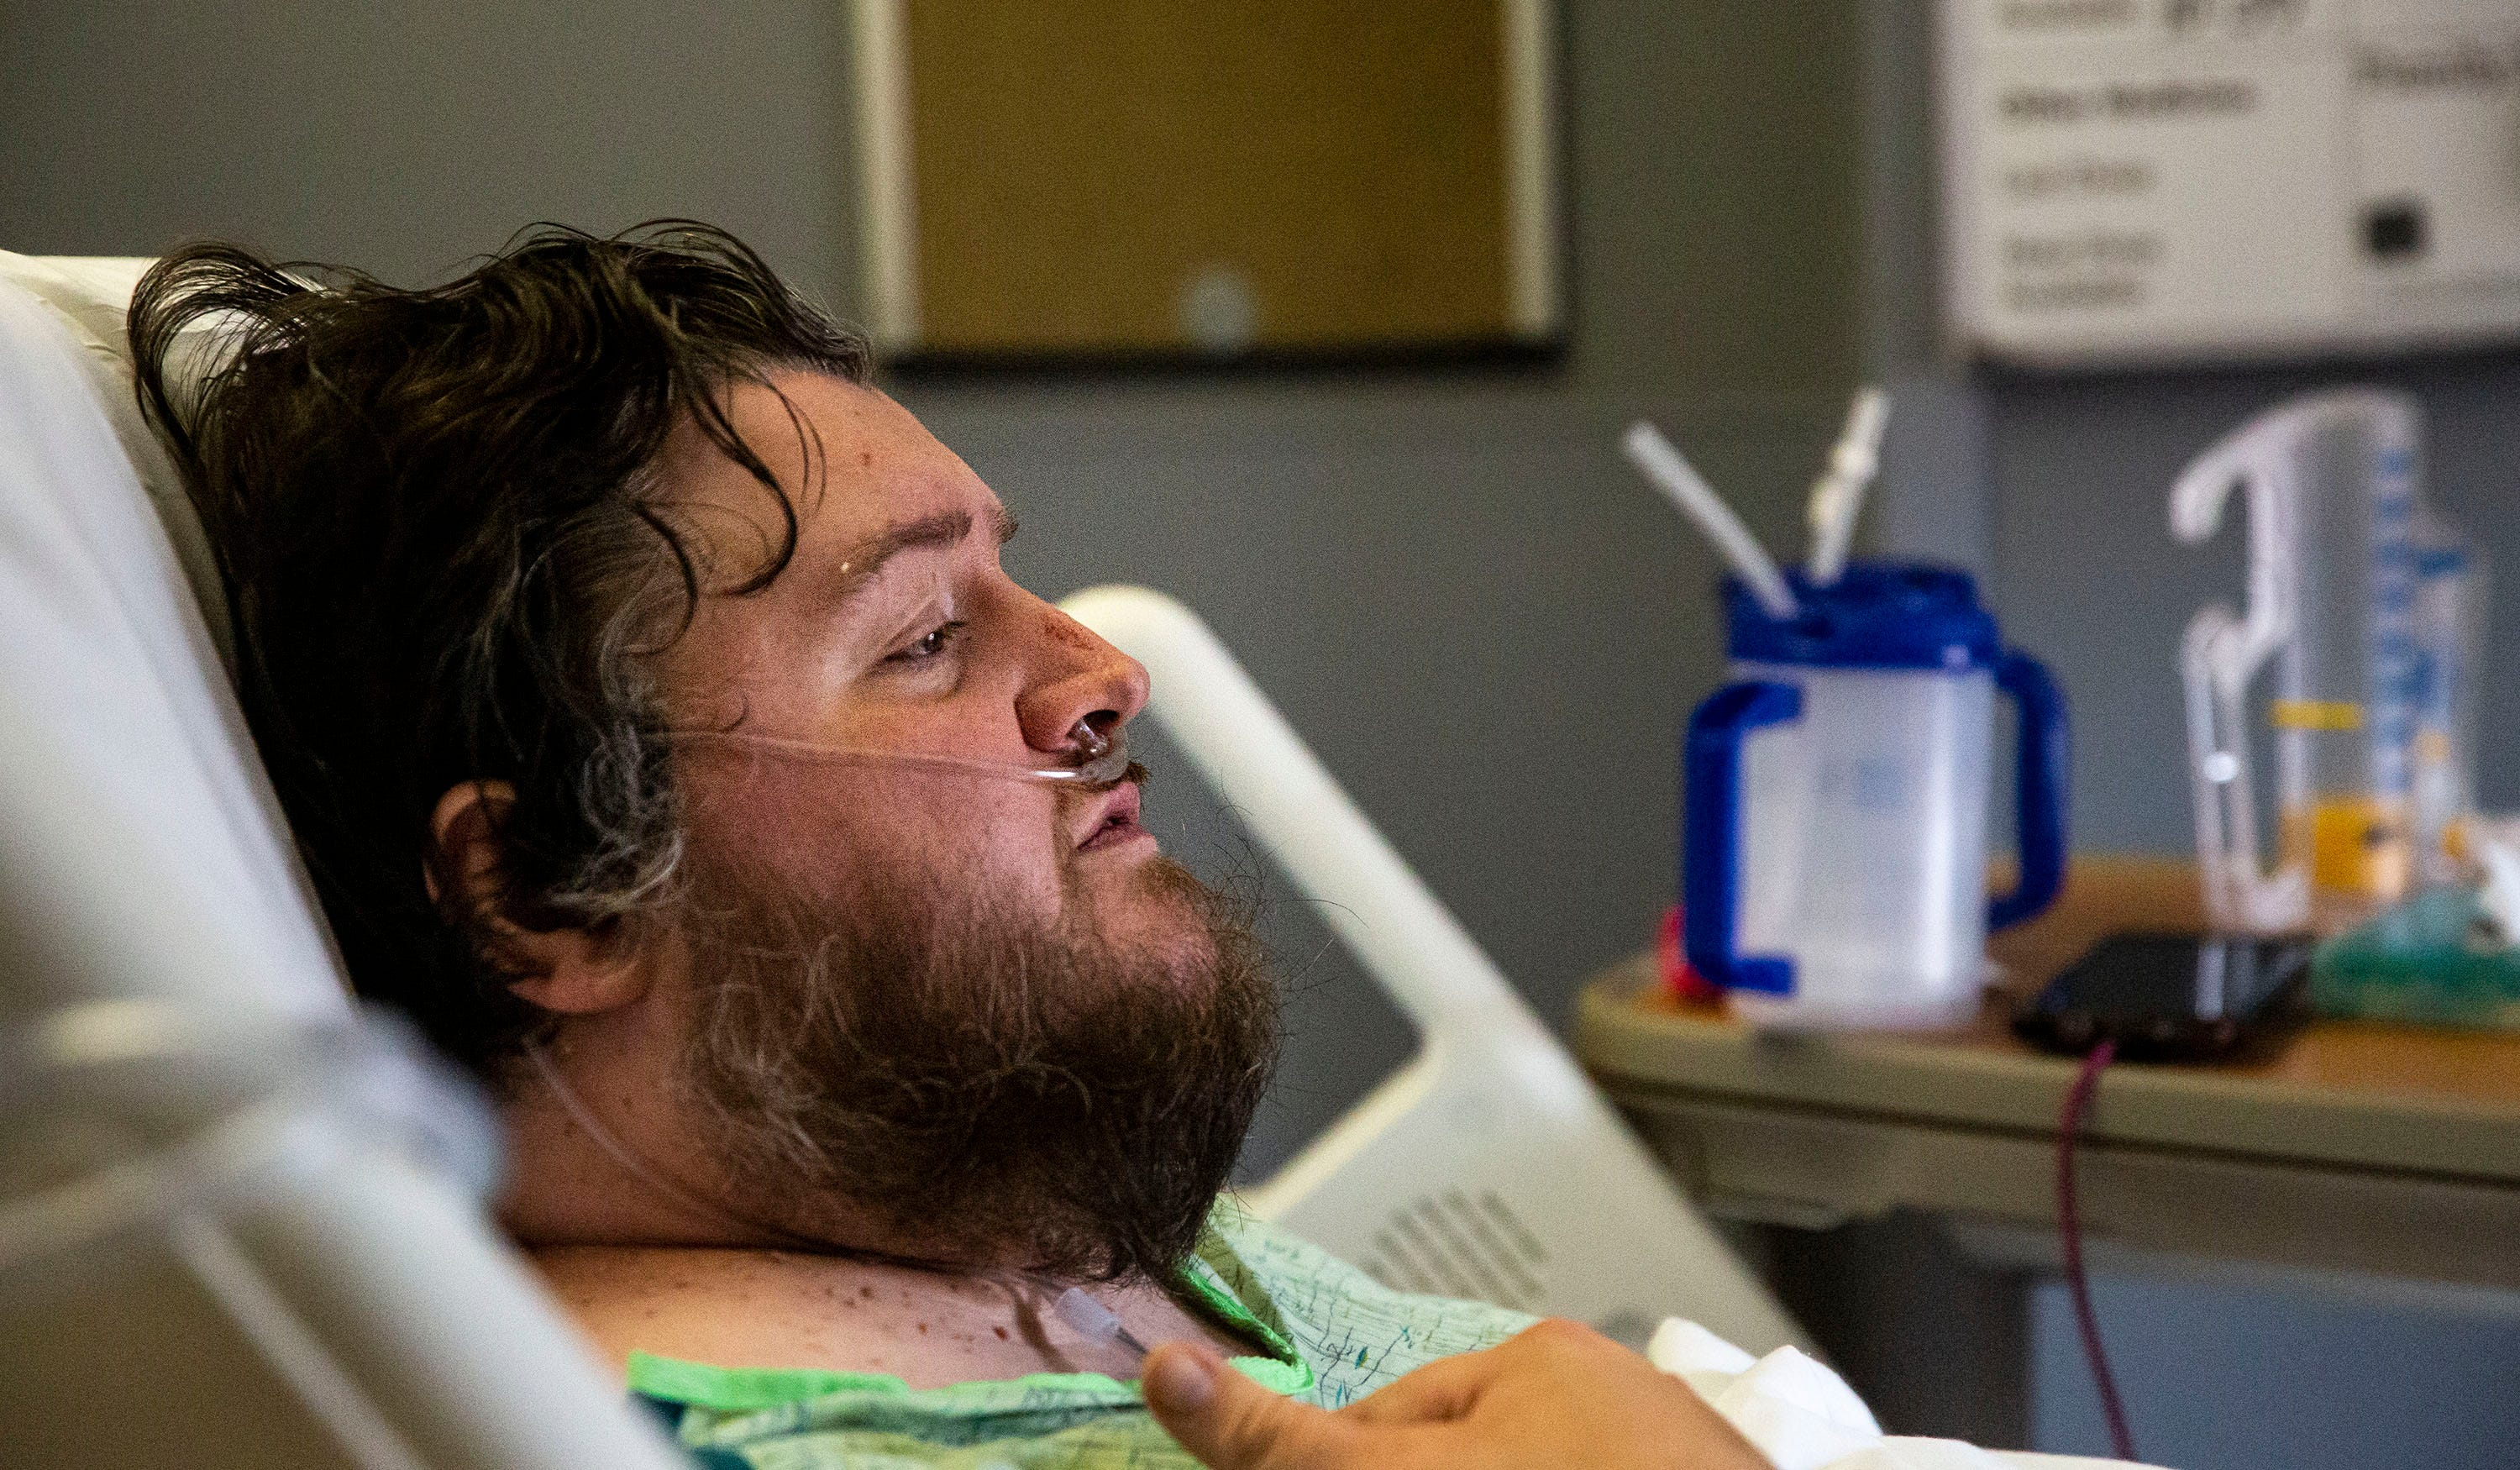 Mark Galvan, 40, of Scranton, recovers from COVID-19 in his hospital bed at Iowa Methodist Medical Center on Friday morning, Sept. 3, 2021, in Des Moines.